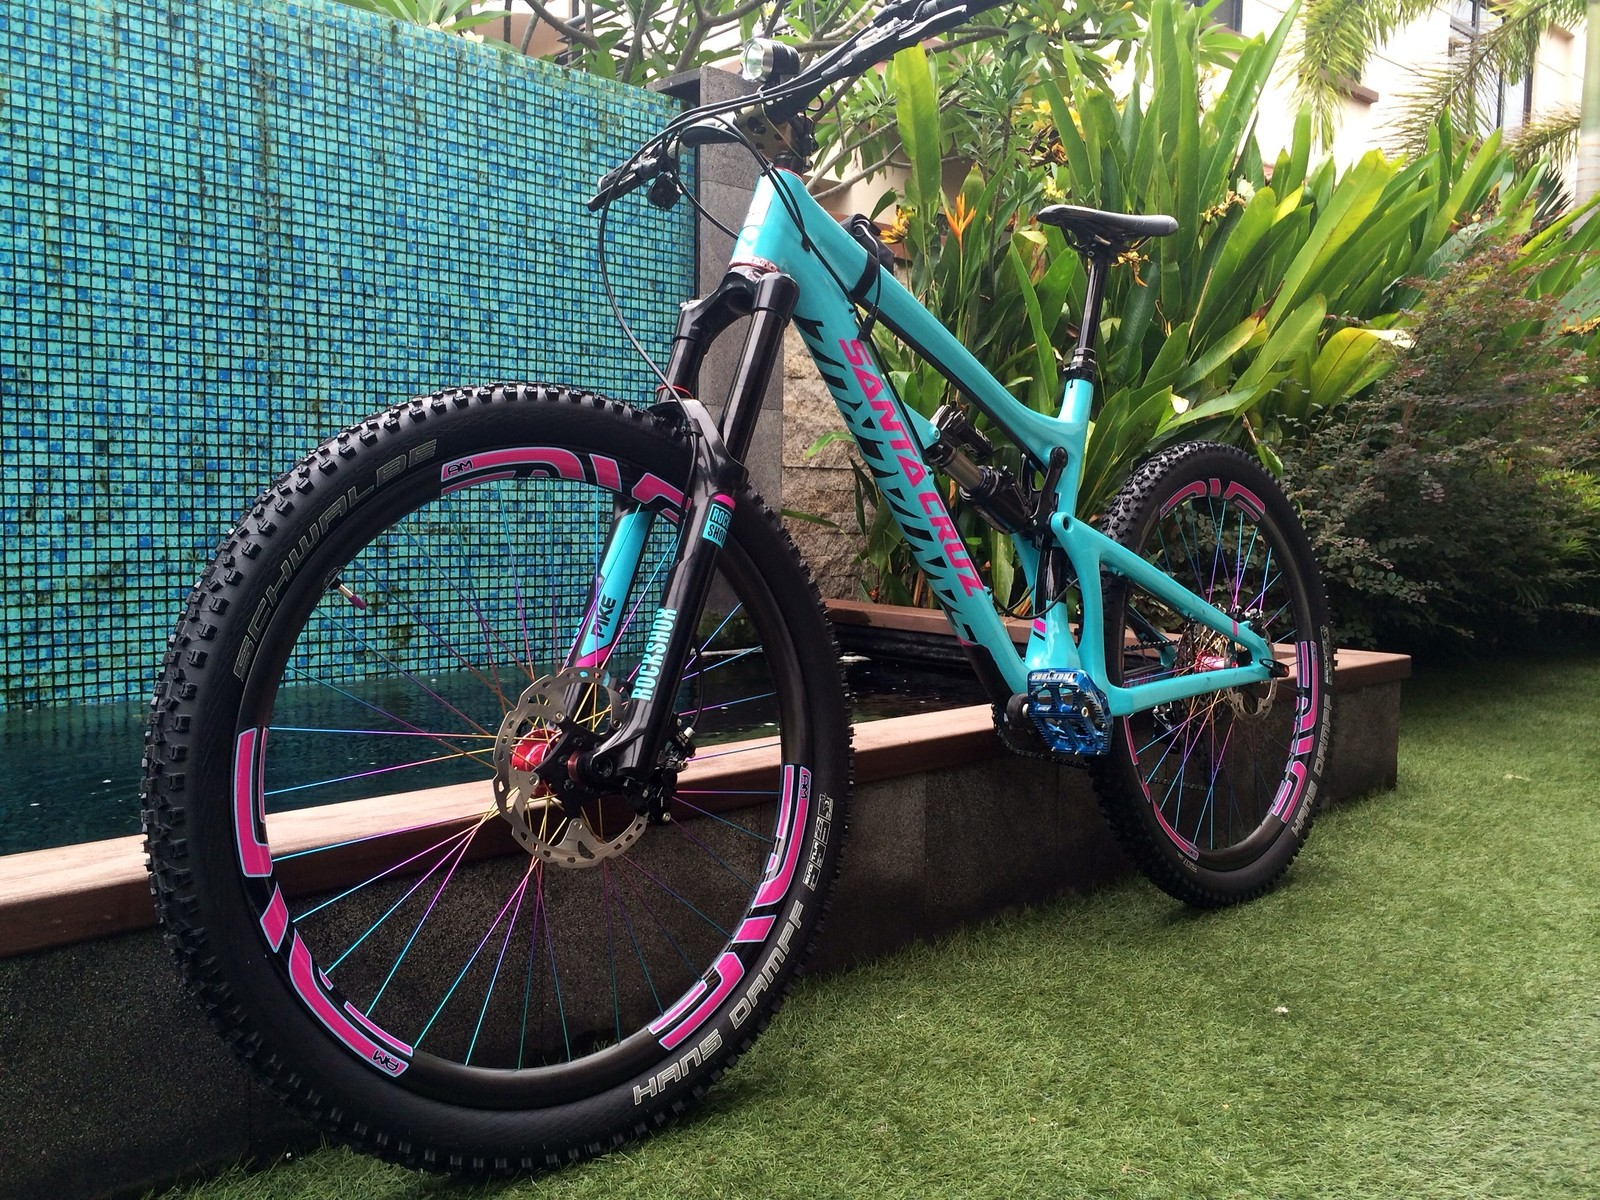 Santa Cruz NomadC 27.5 Bubblegum Edition